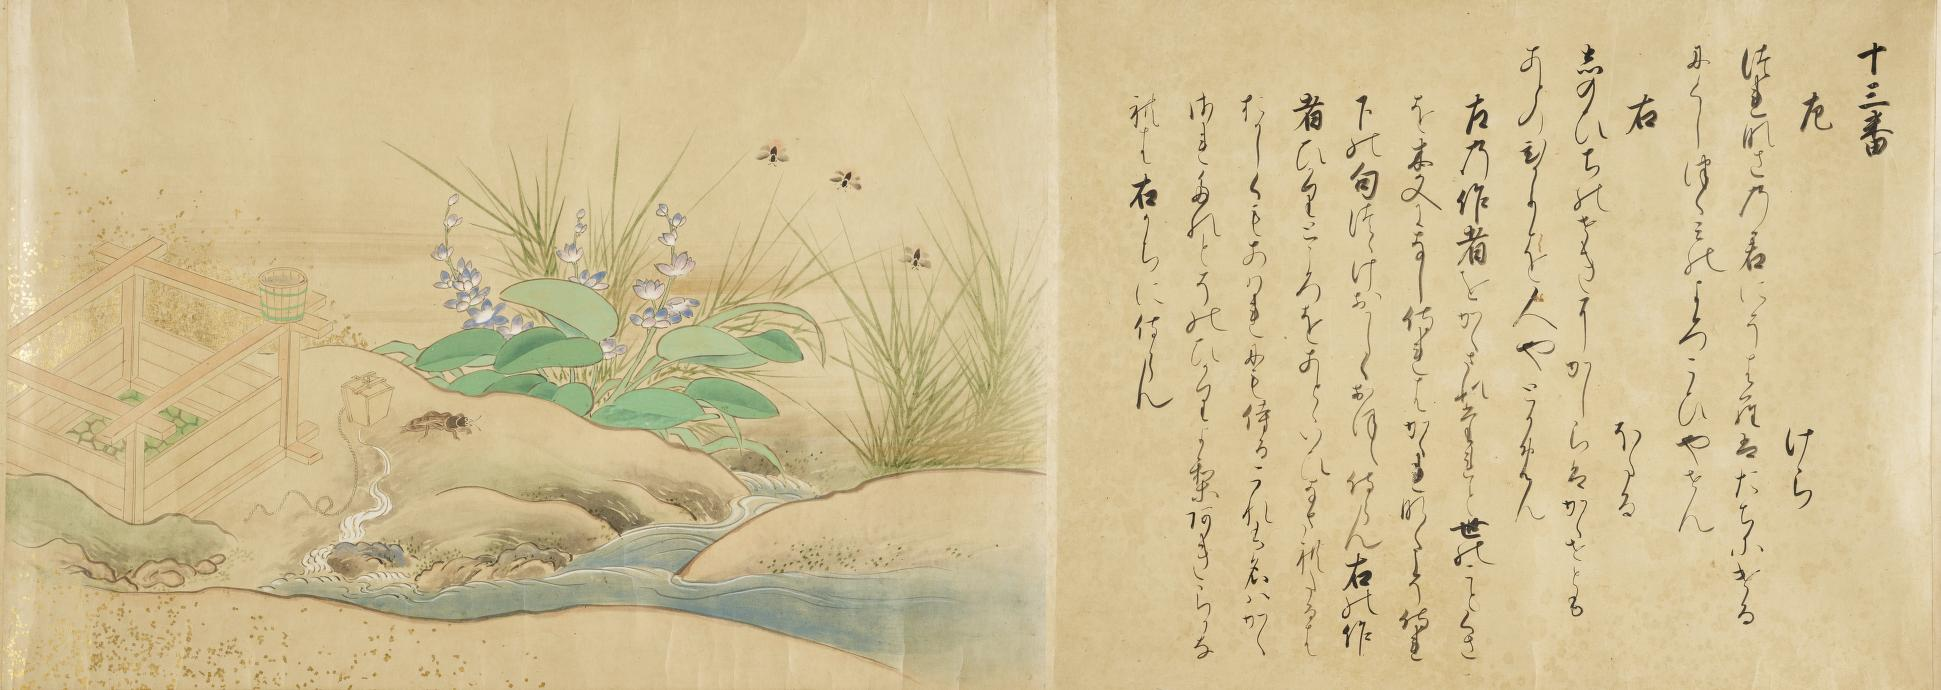 Portion of a Japanese scroll with text and insects